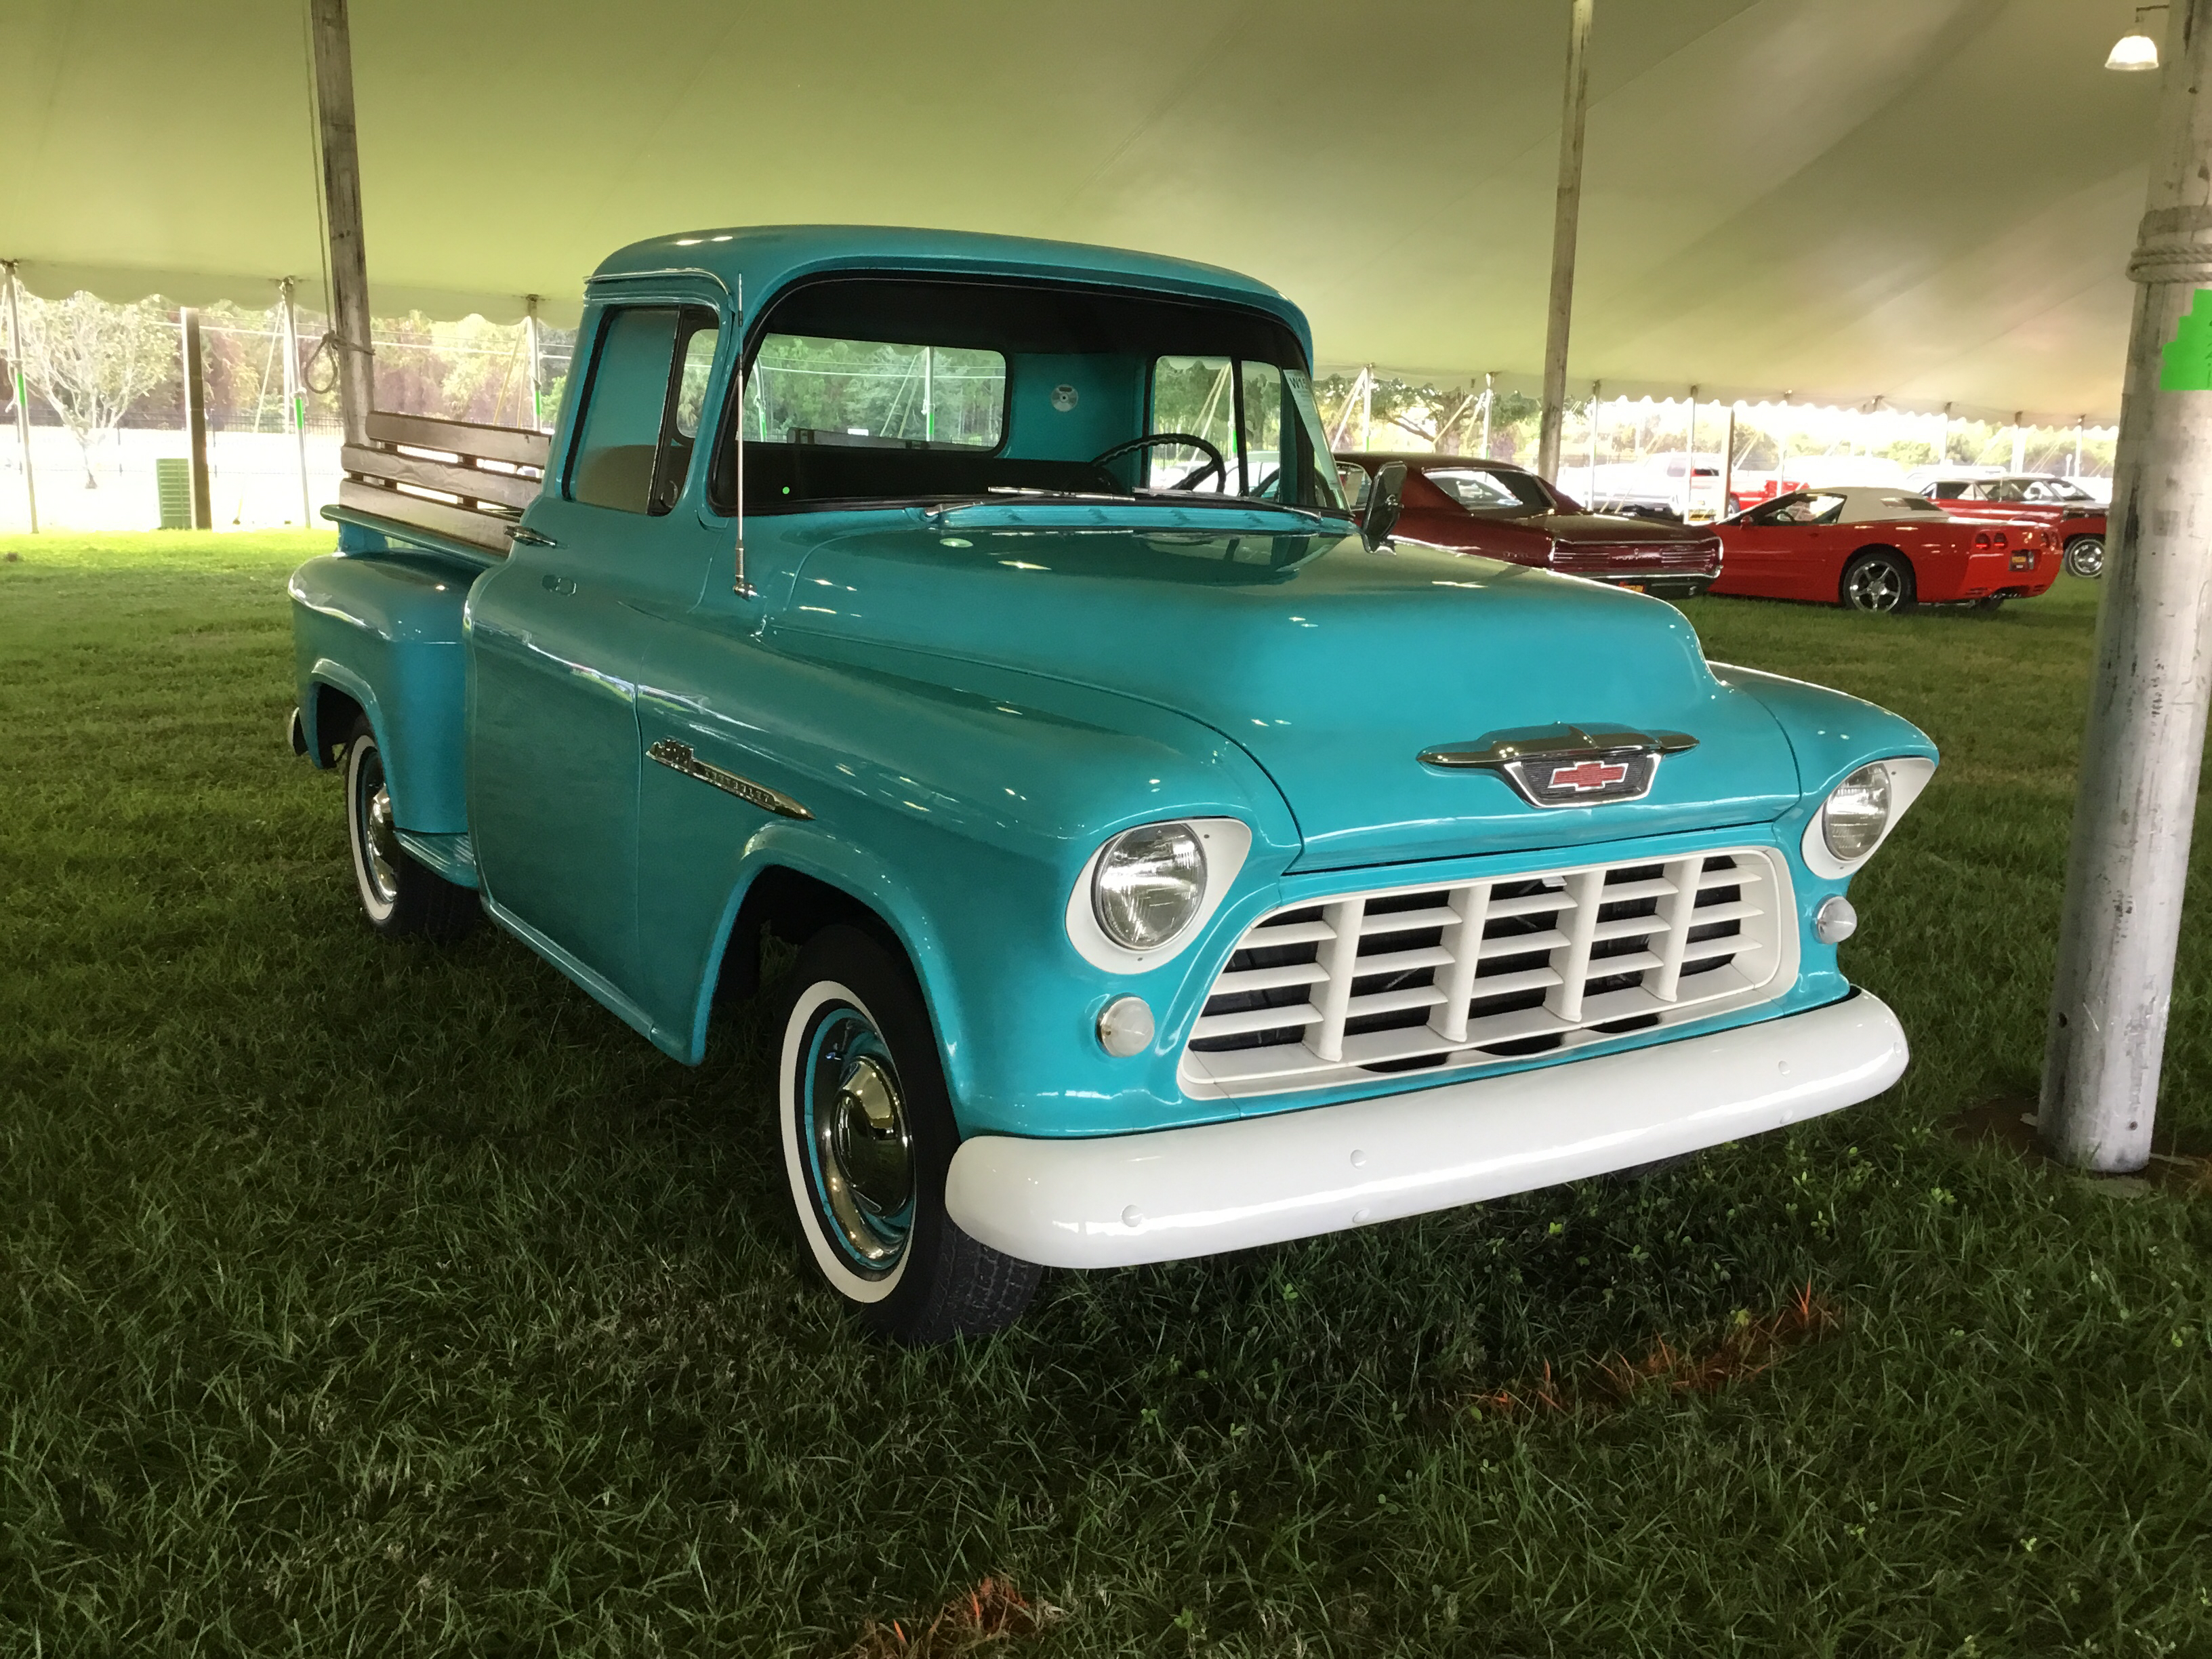 1955 Chevrolet Series 3100 1 2 Ton Values Hagerty Valuation Tool